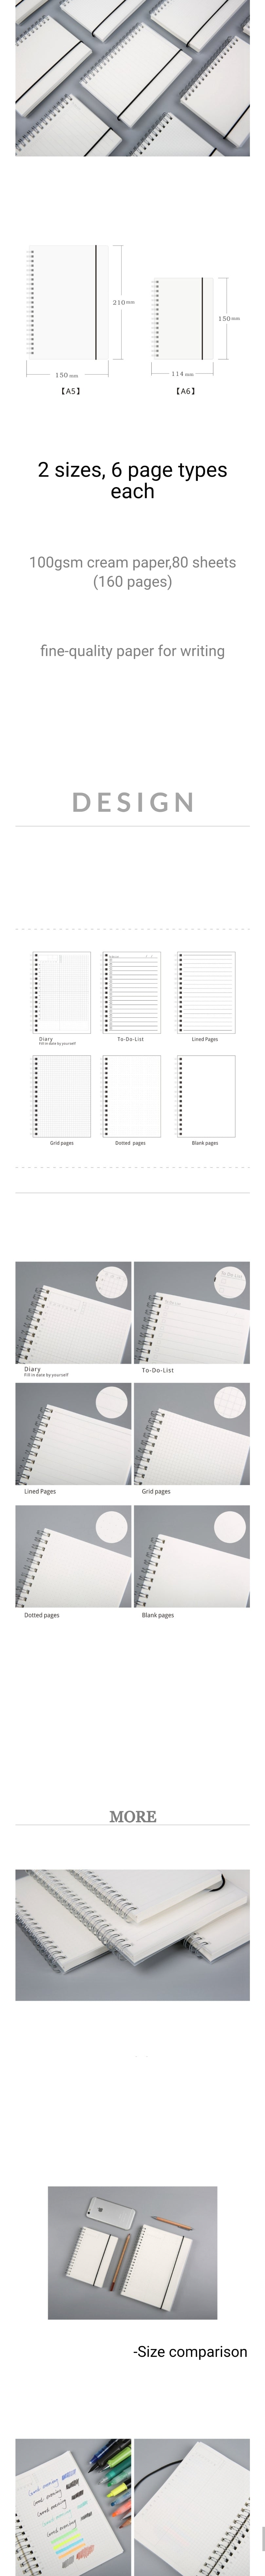 A5 A6 Spiral Bound Notebook - Otrio Stationery